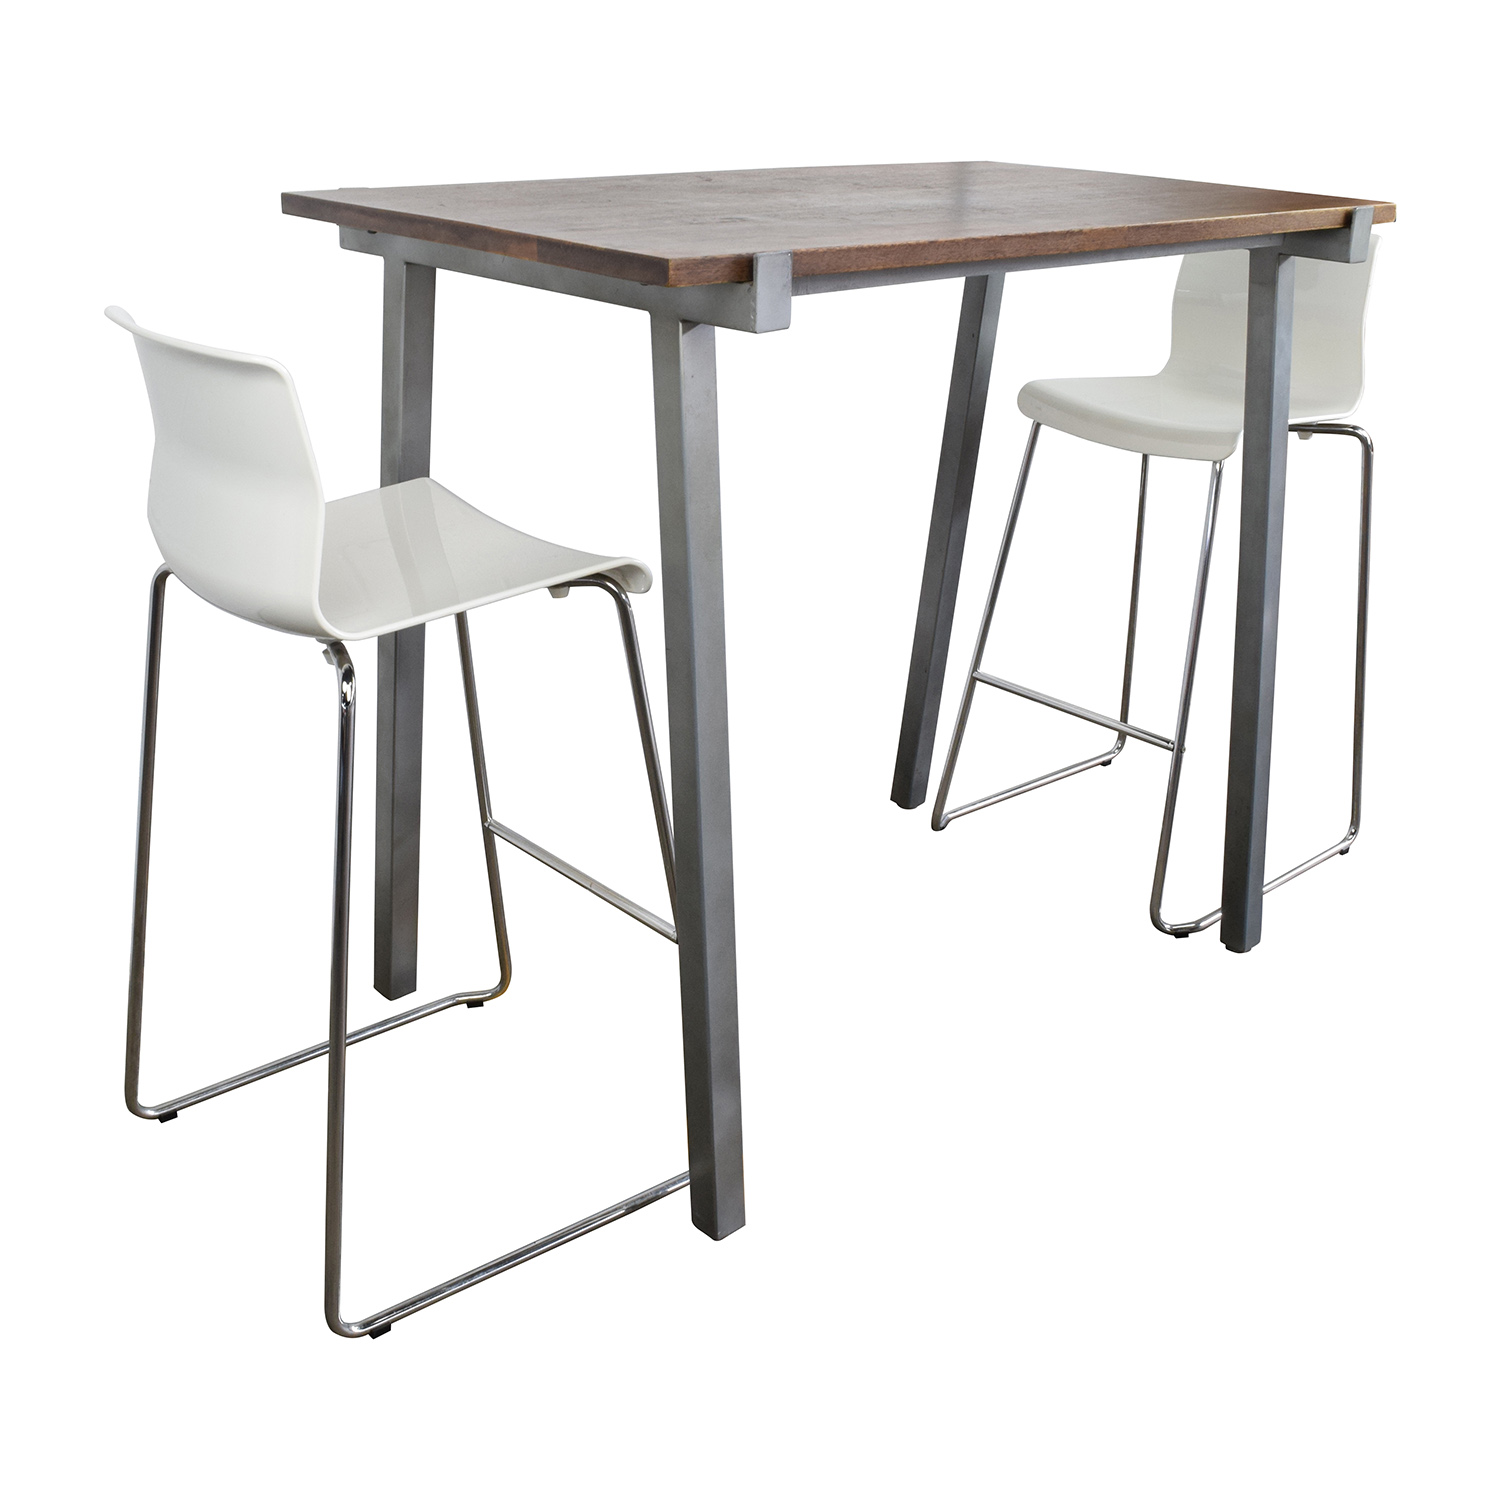 buy CB2 High Dining Table and Chairs Set CB2 Tables